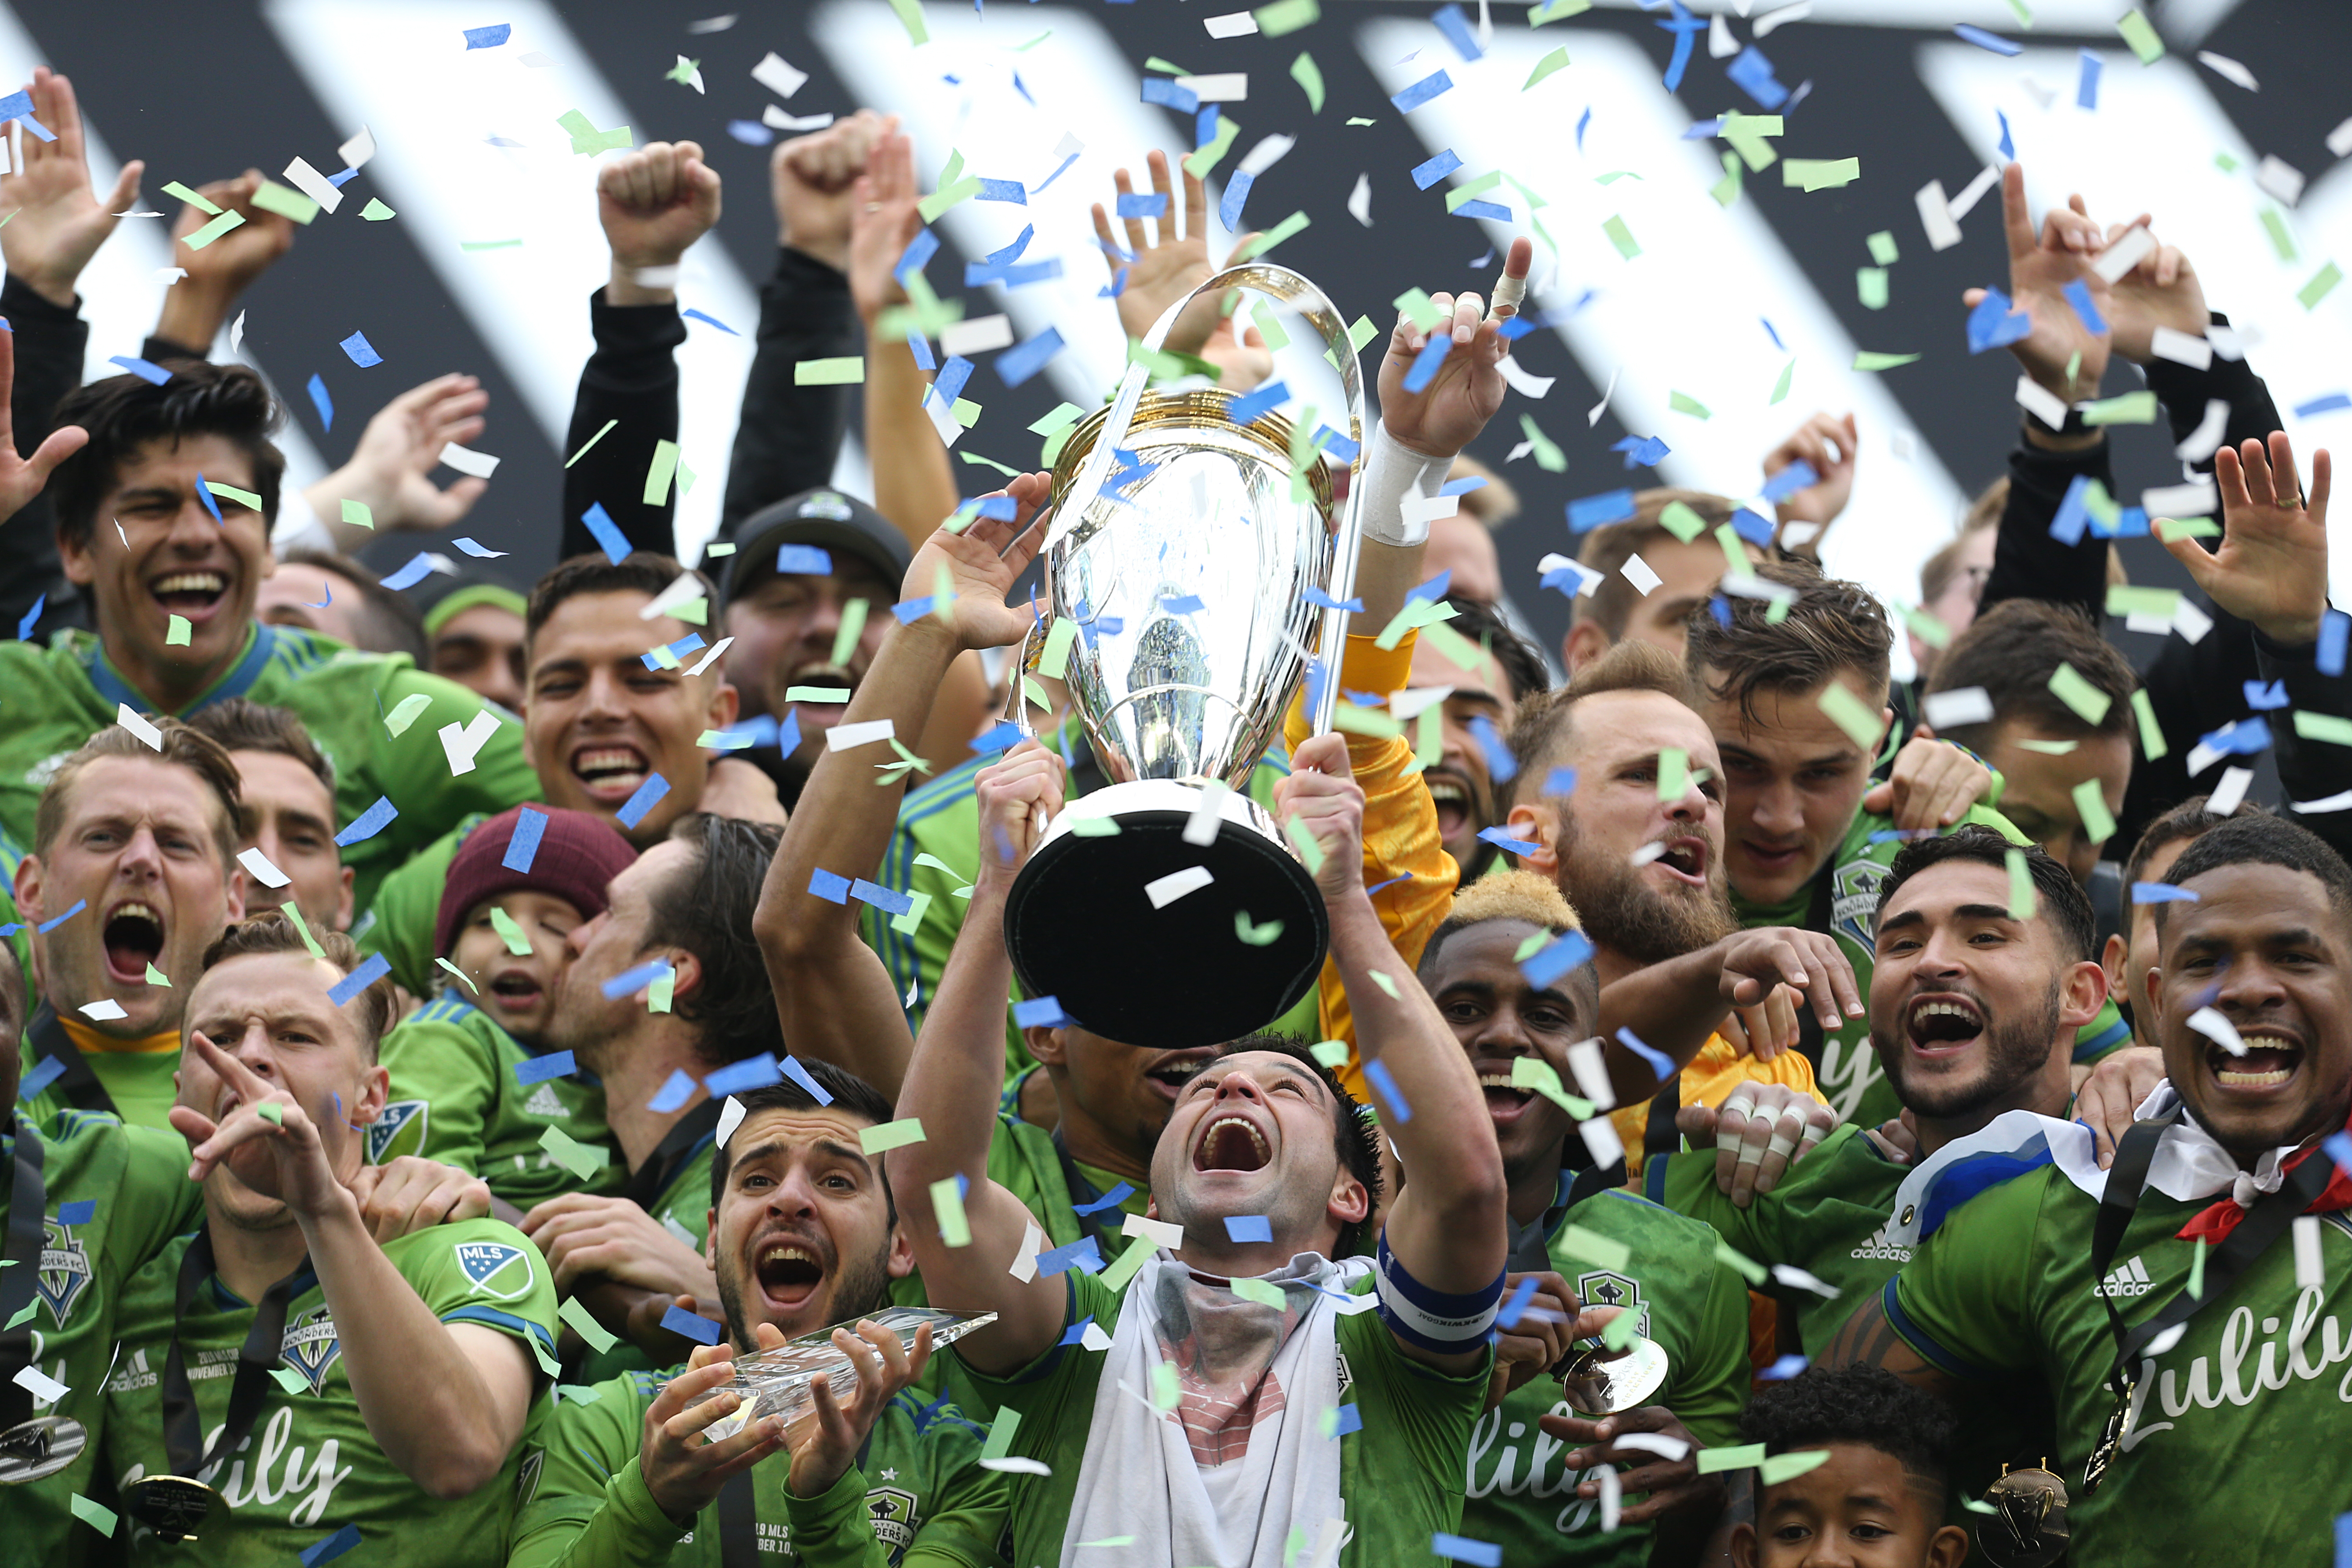 The Seattle Sounders team celebrates their MLS Cup victory among a confetti shower by hoisting the trophy.